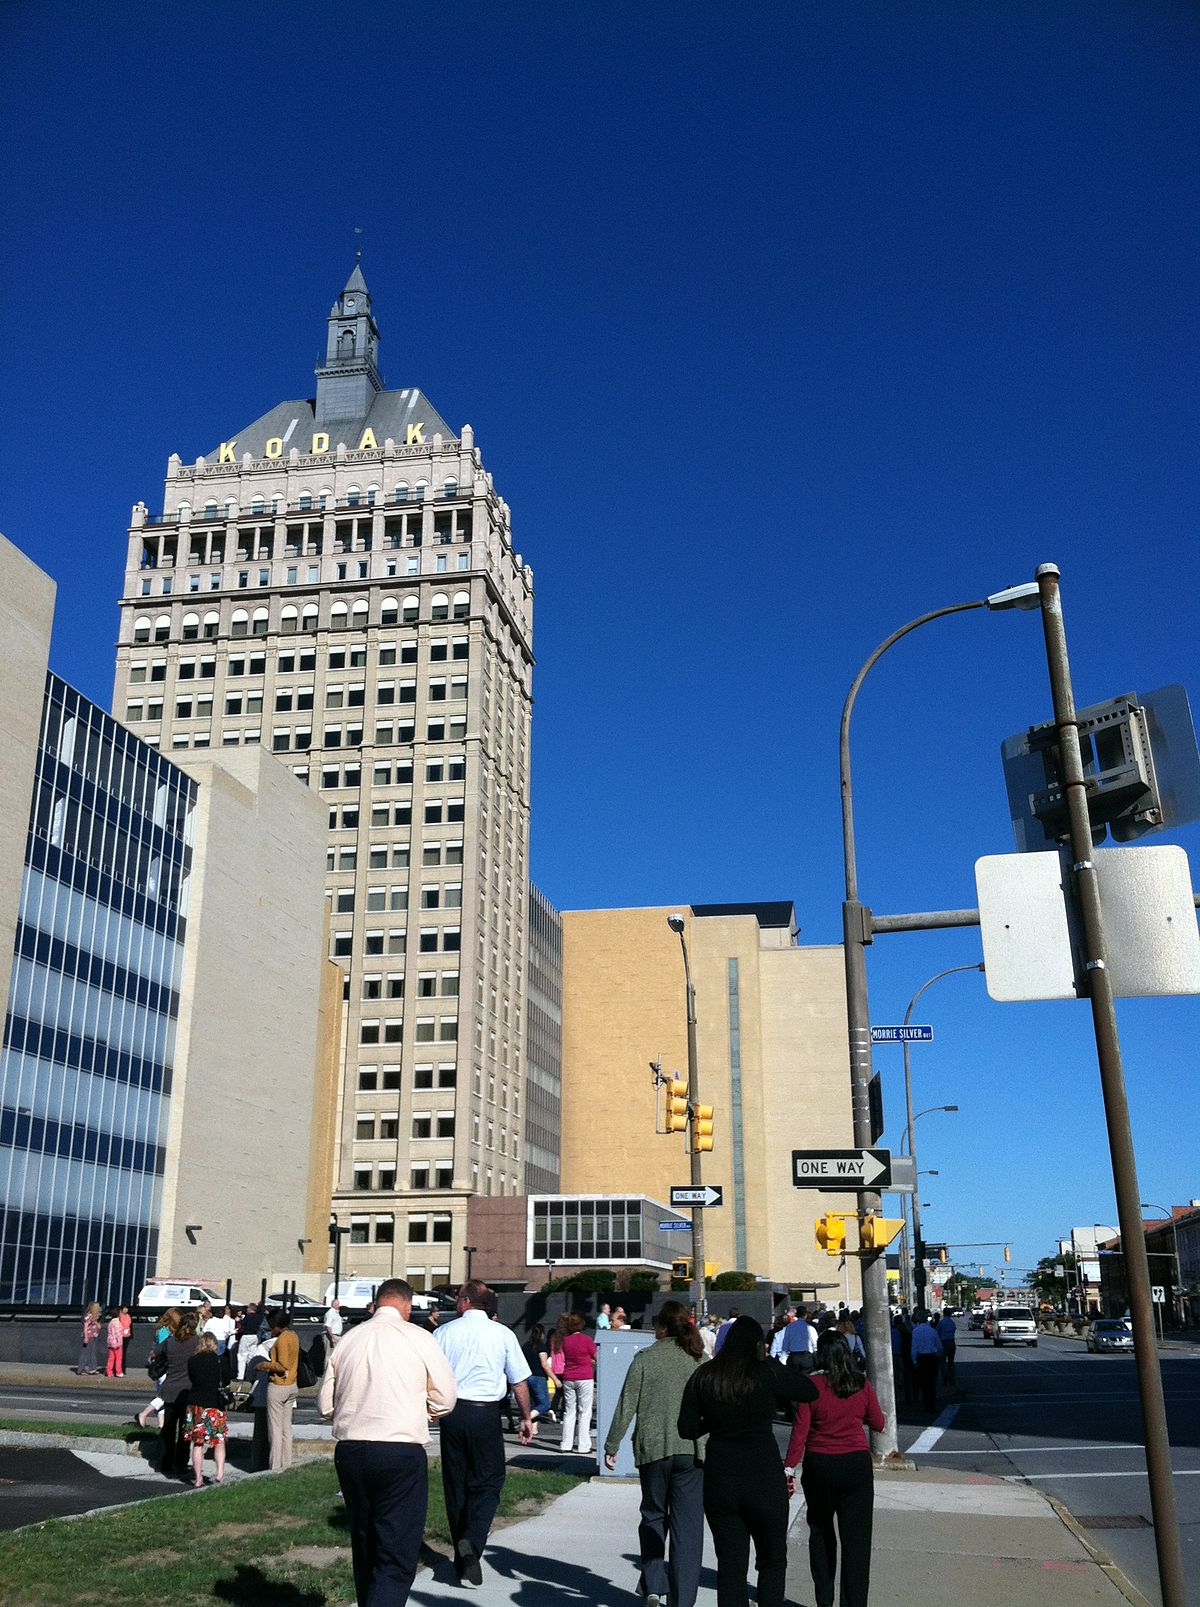 Kodak Tower Wikipedia